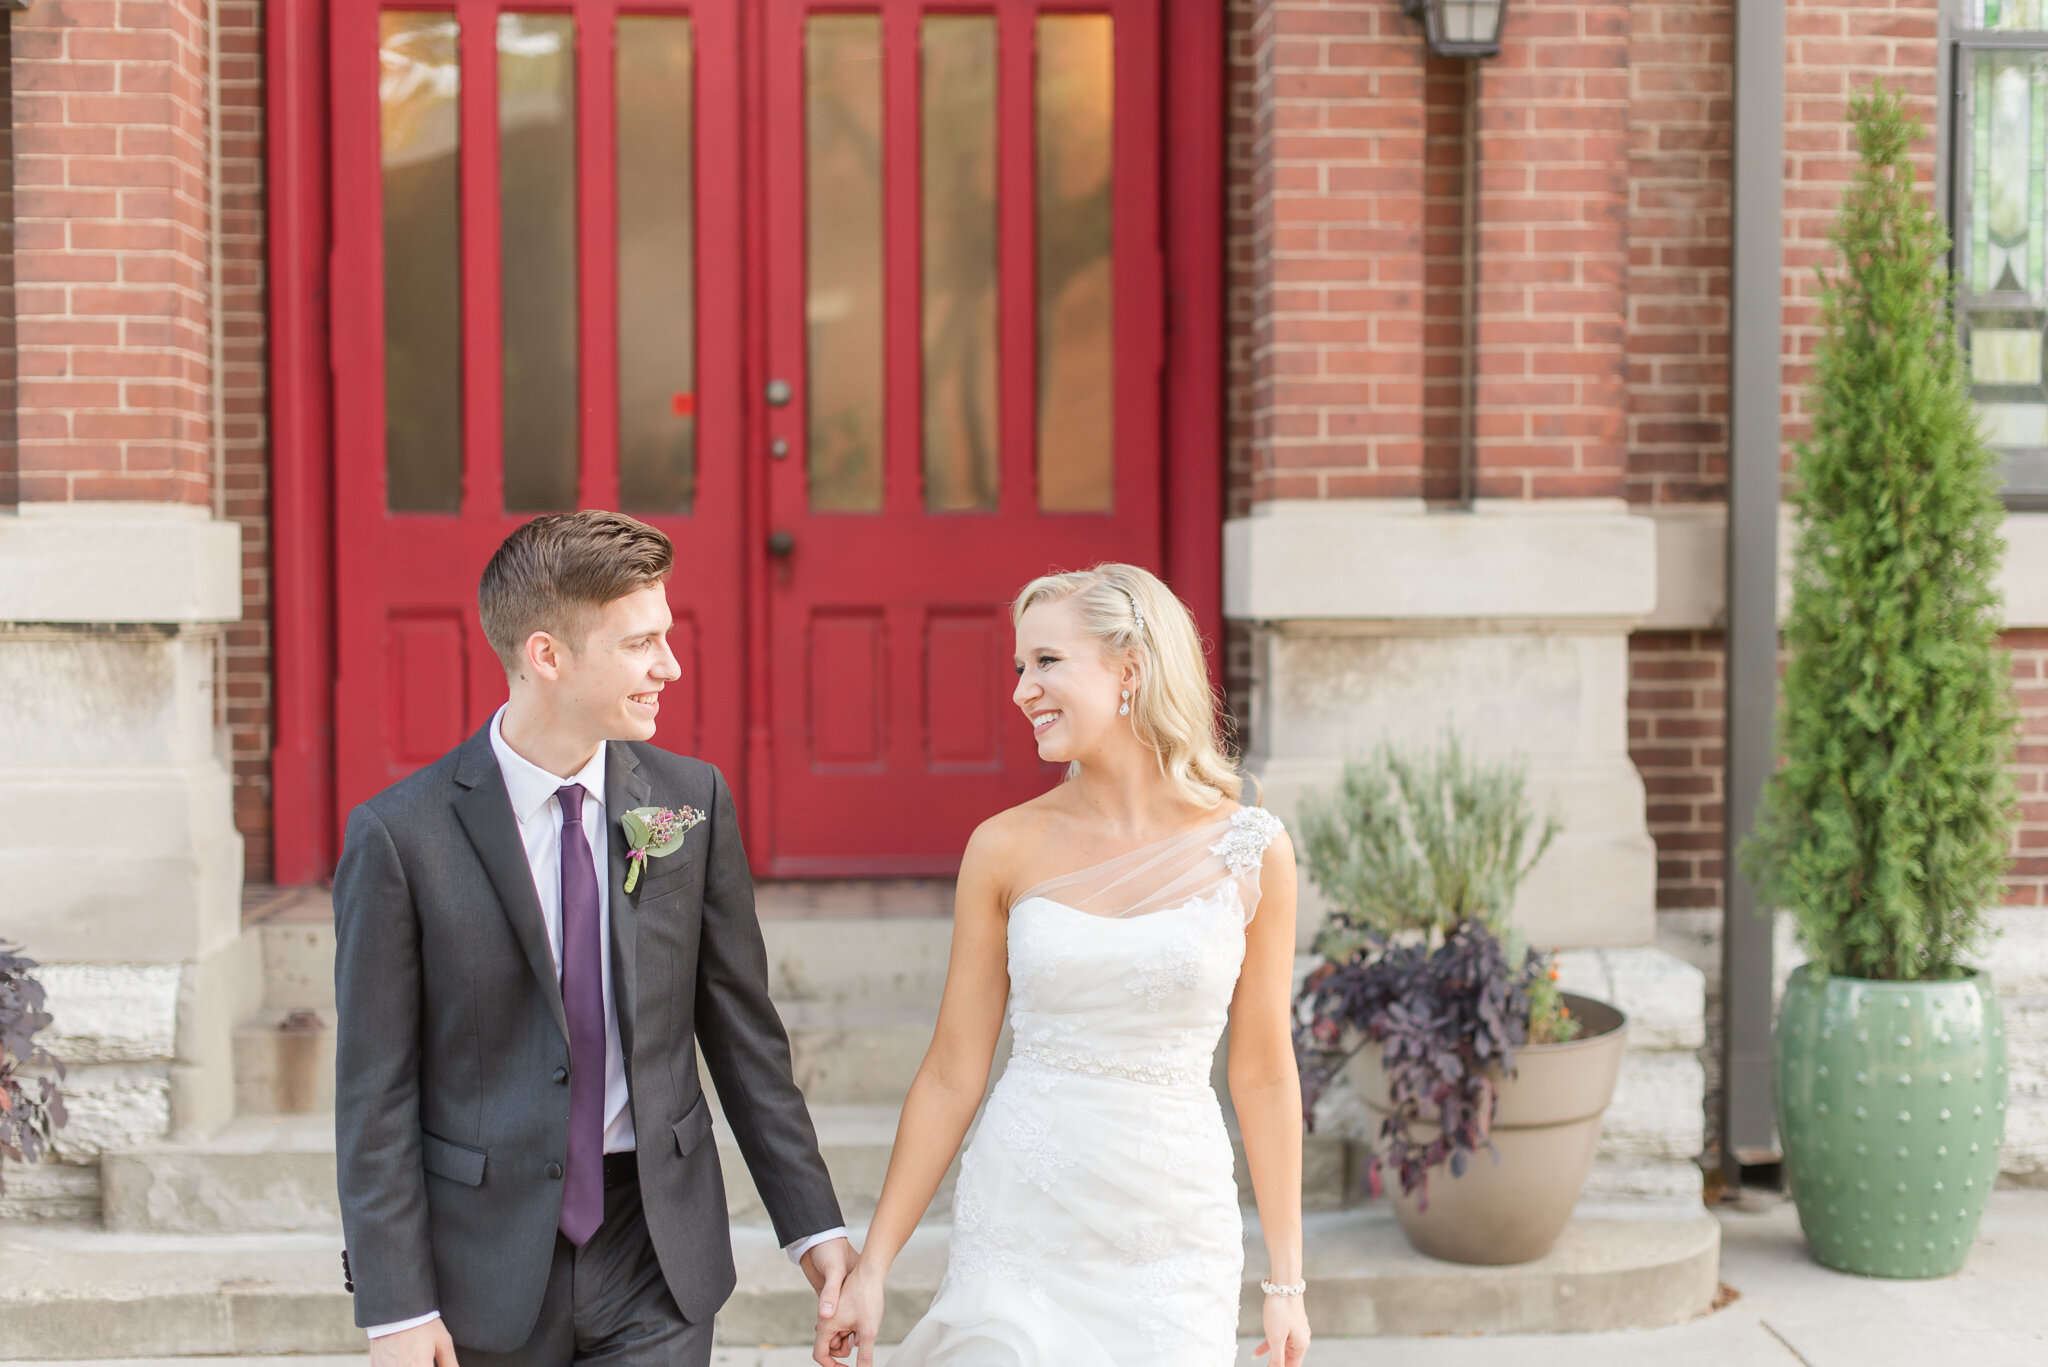 Downtown Indianapolis Wedding at Cyrus Place8354.jpg